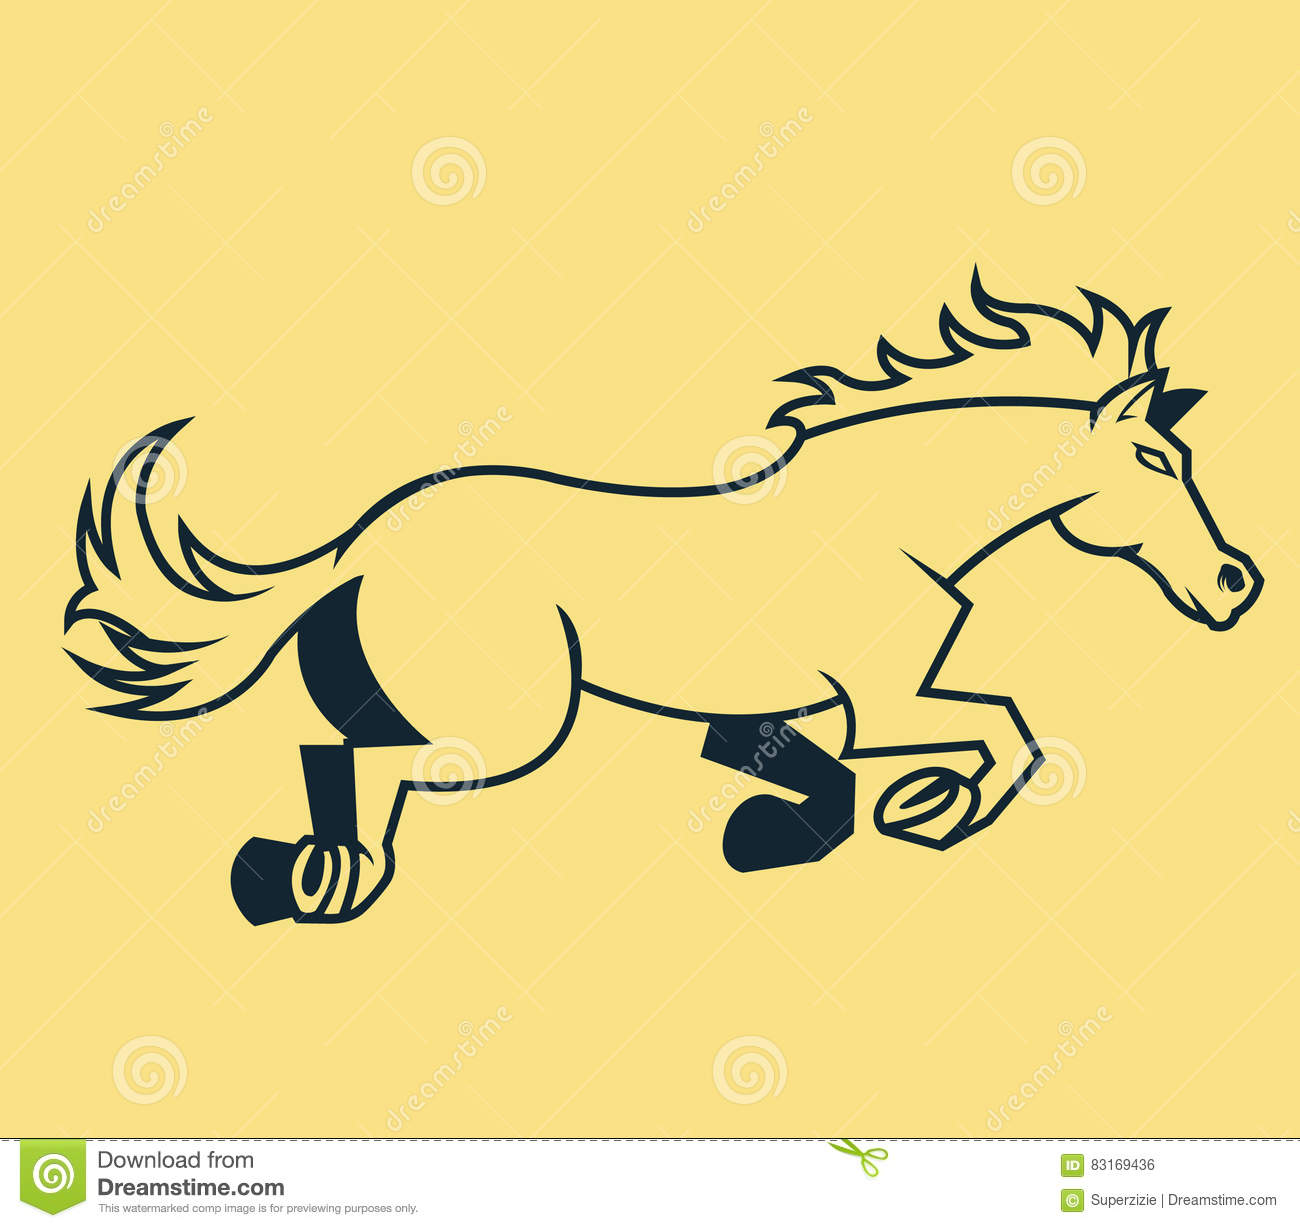 Line Art Vector Illustrator : Jump horse line art stock vector image of wildlife sport